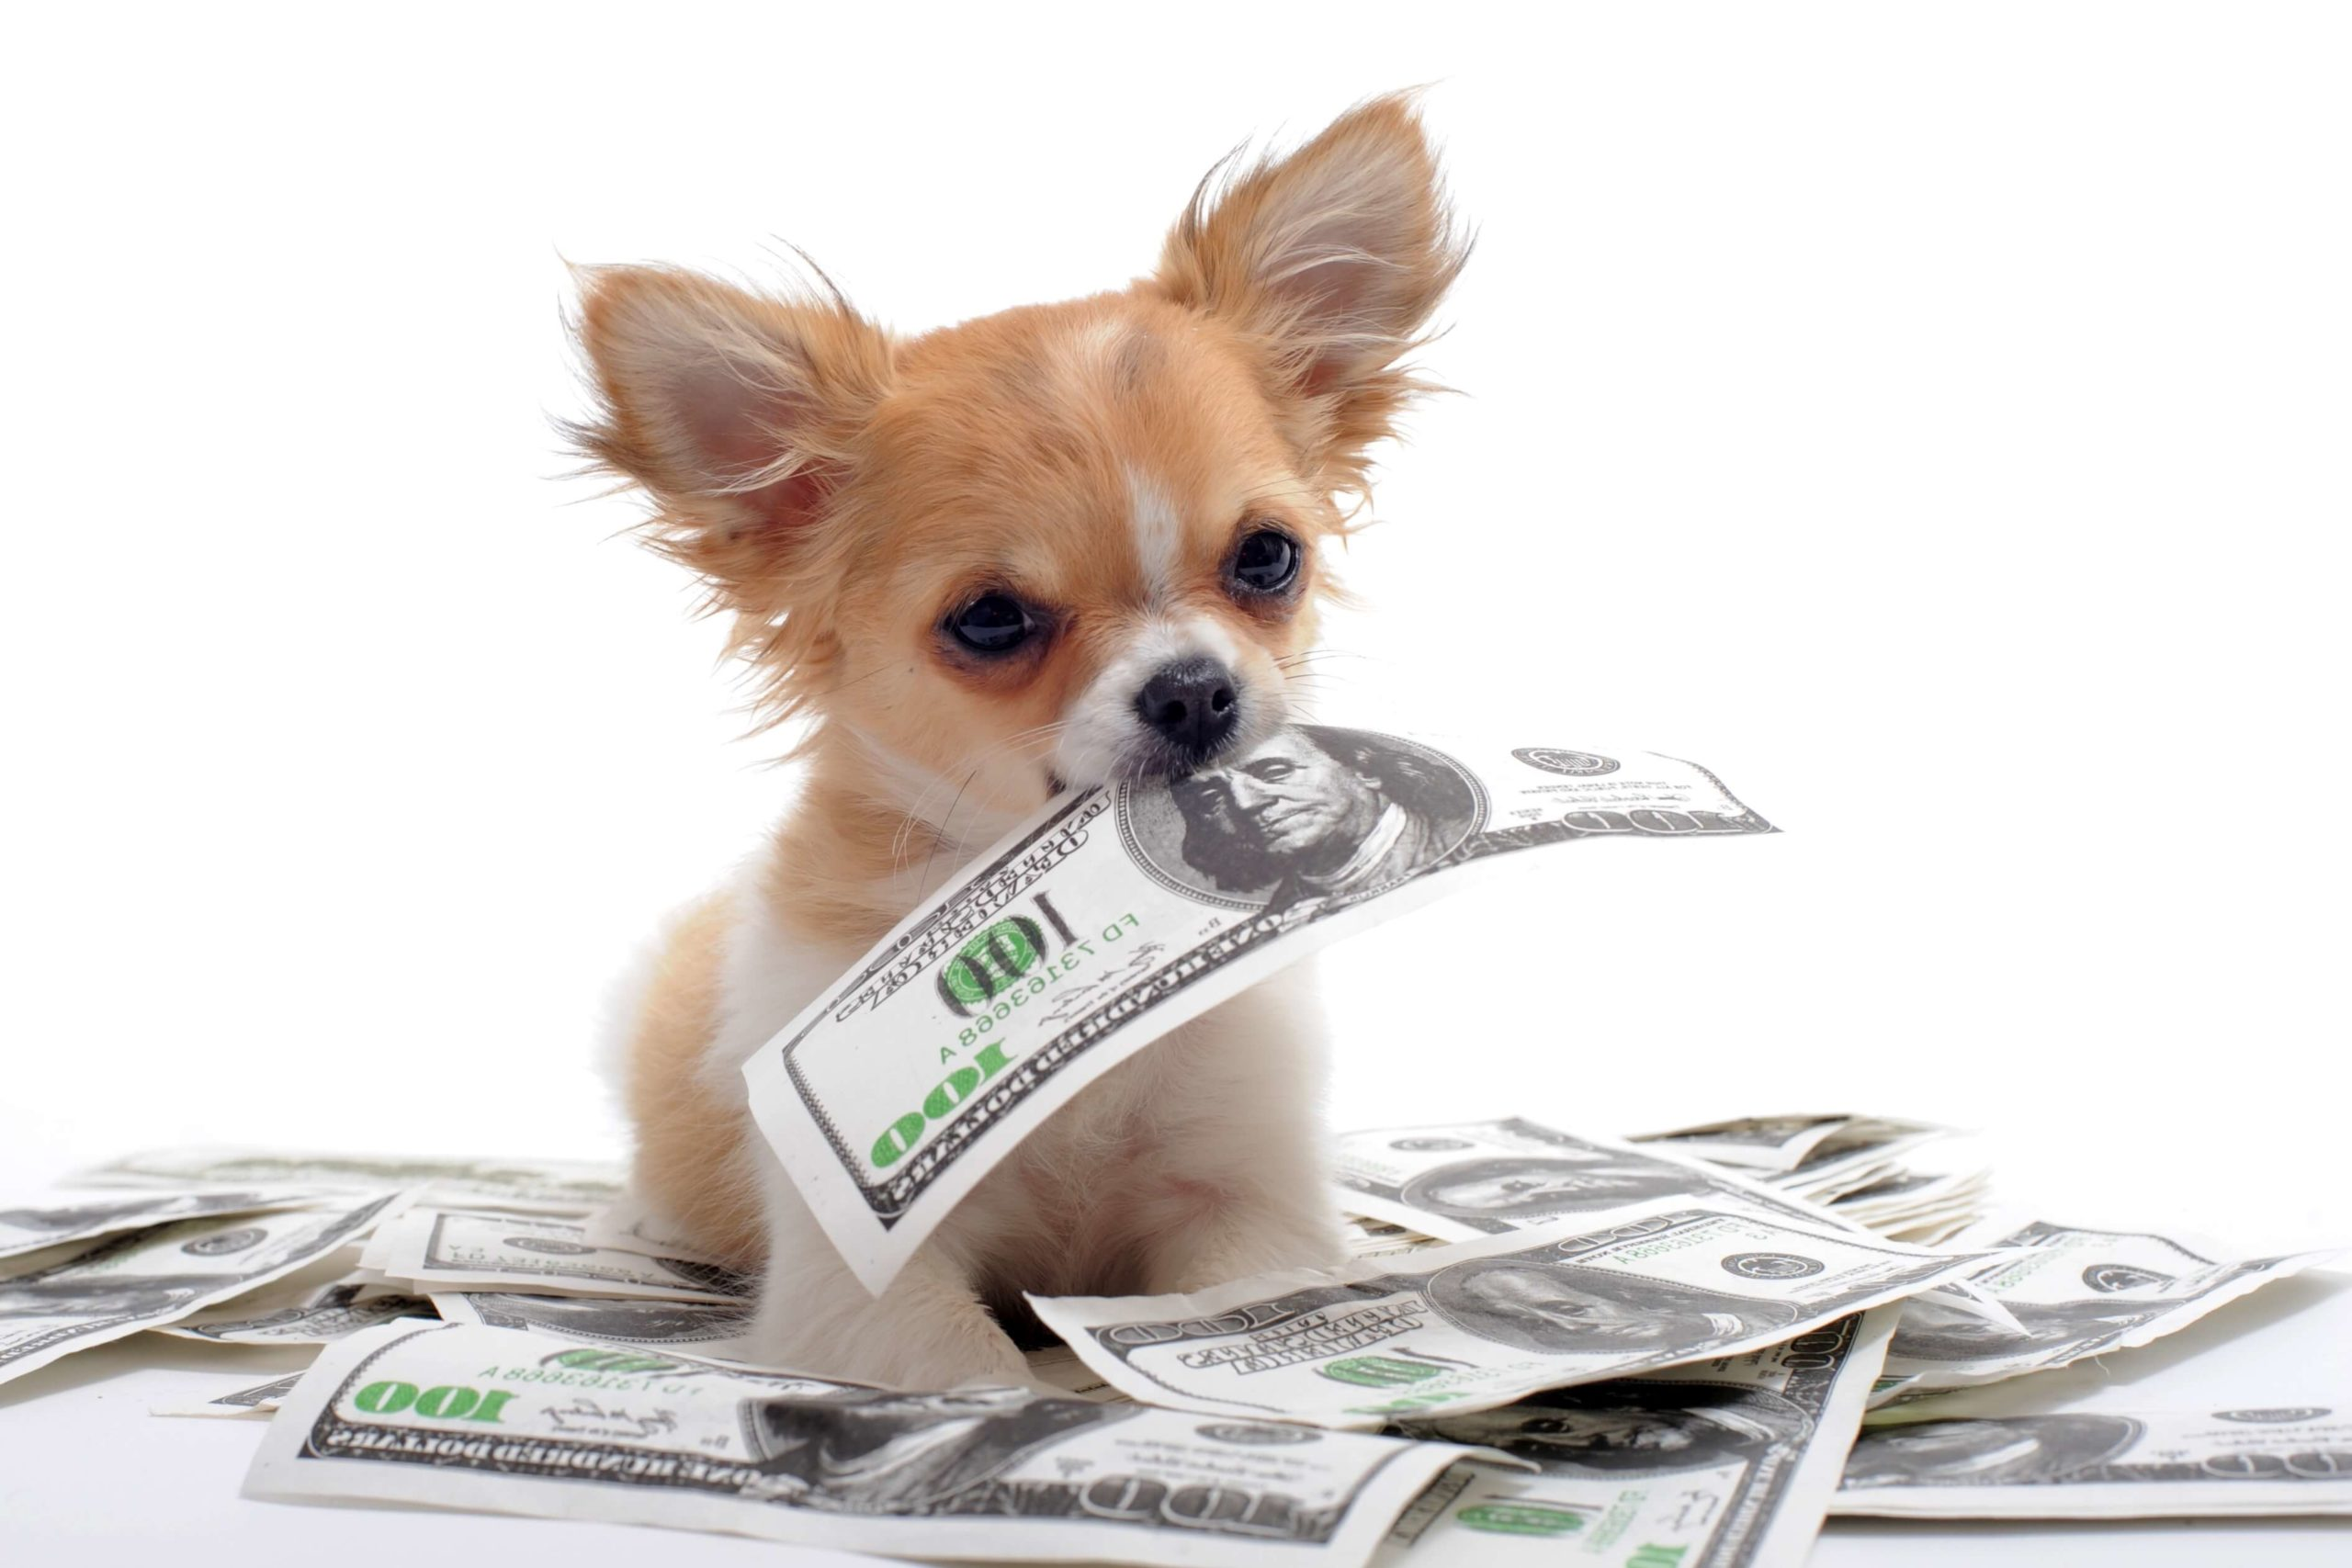 A small pup next to a pile of dollar bills